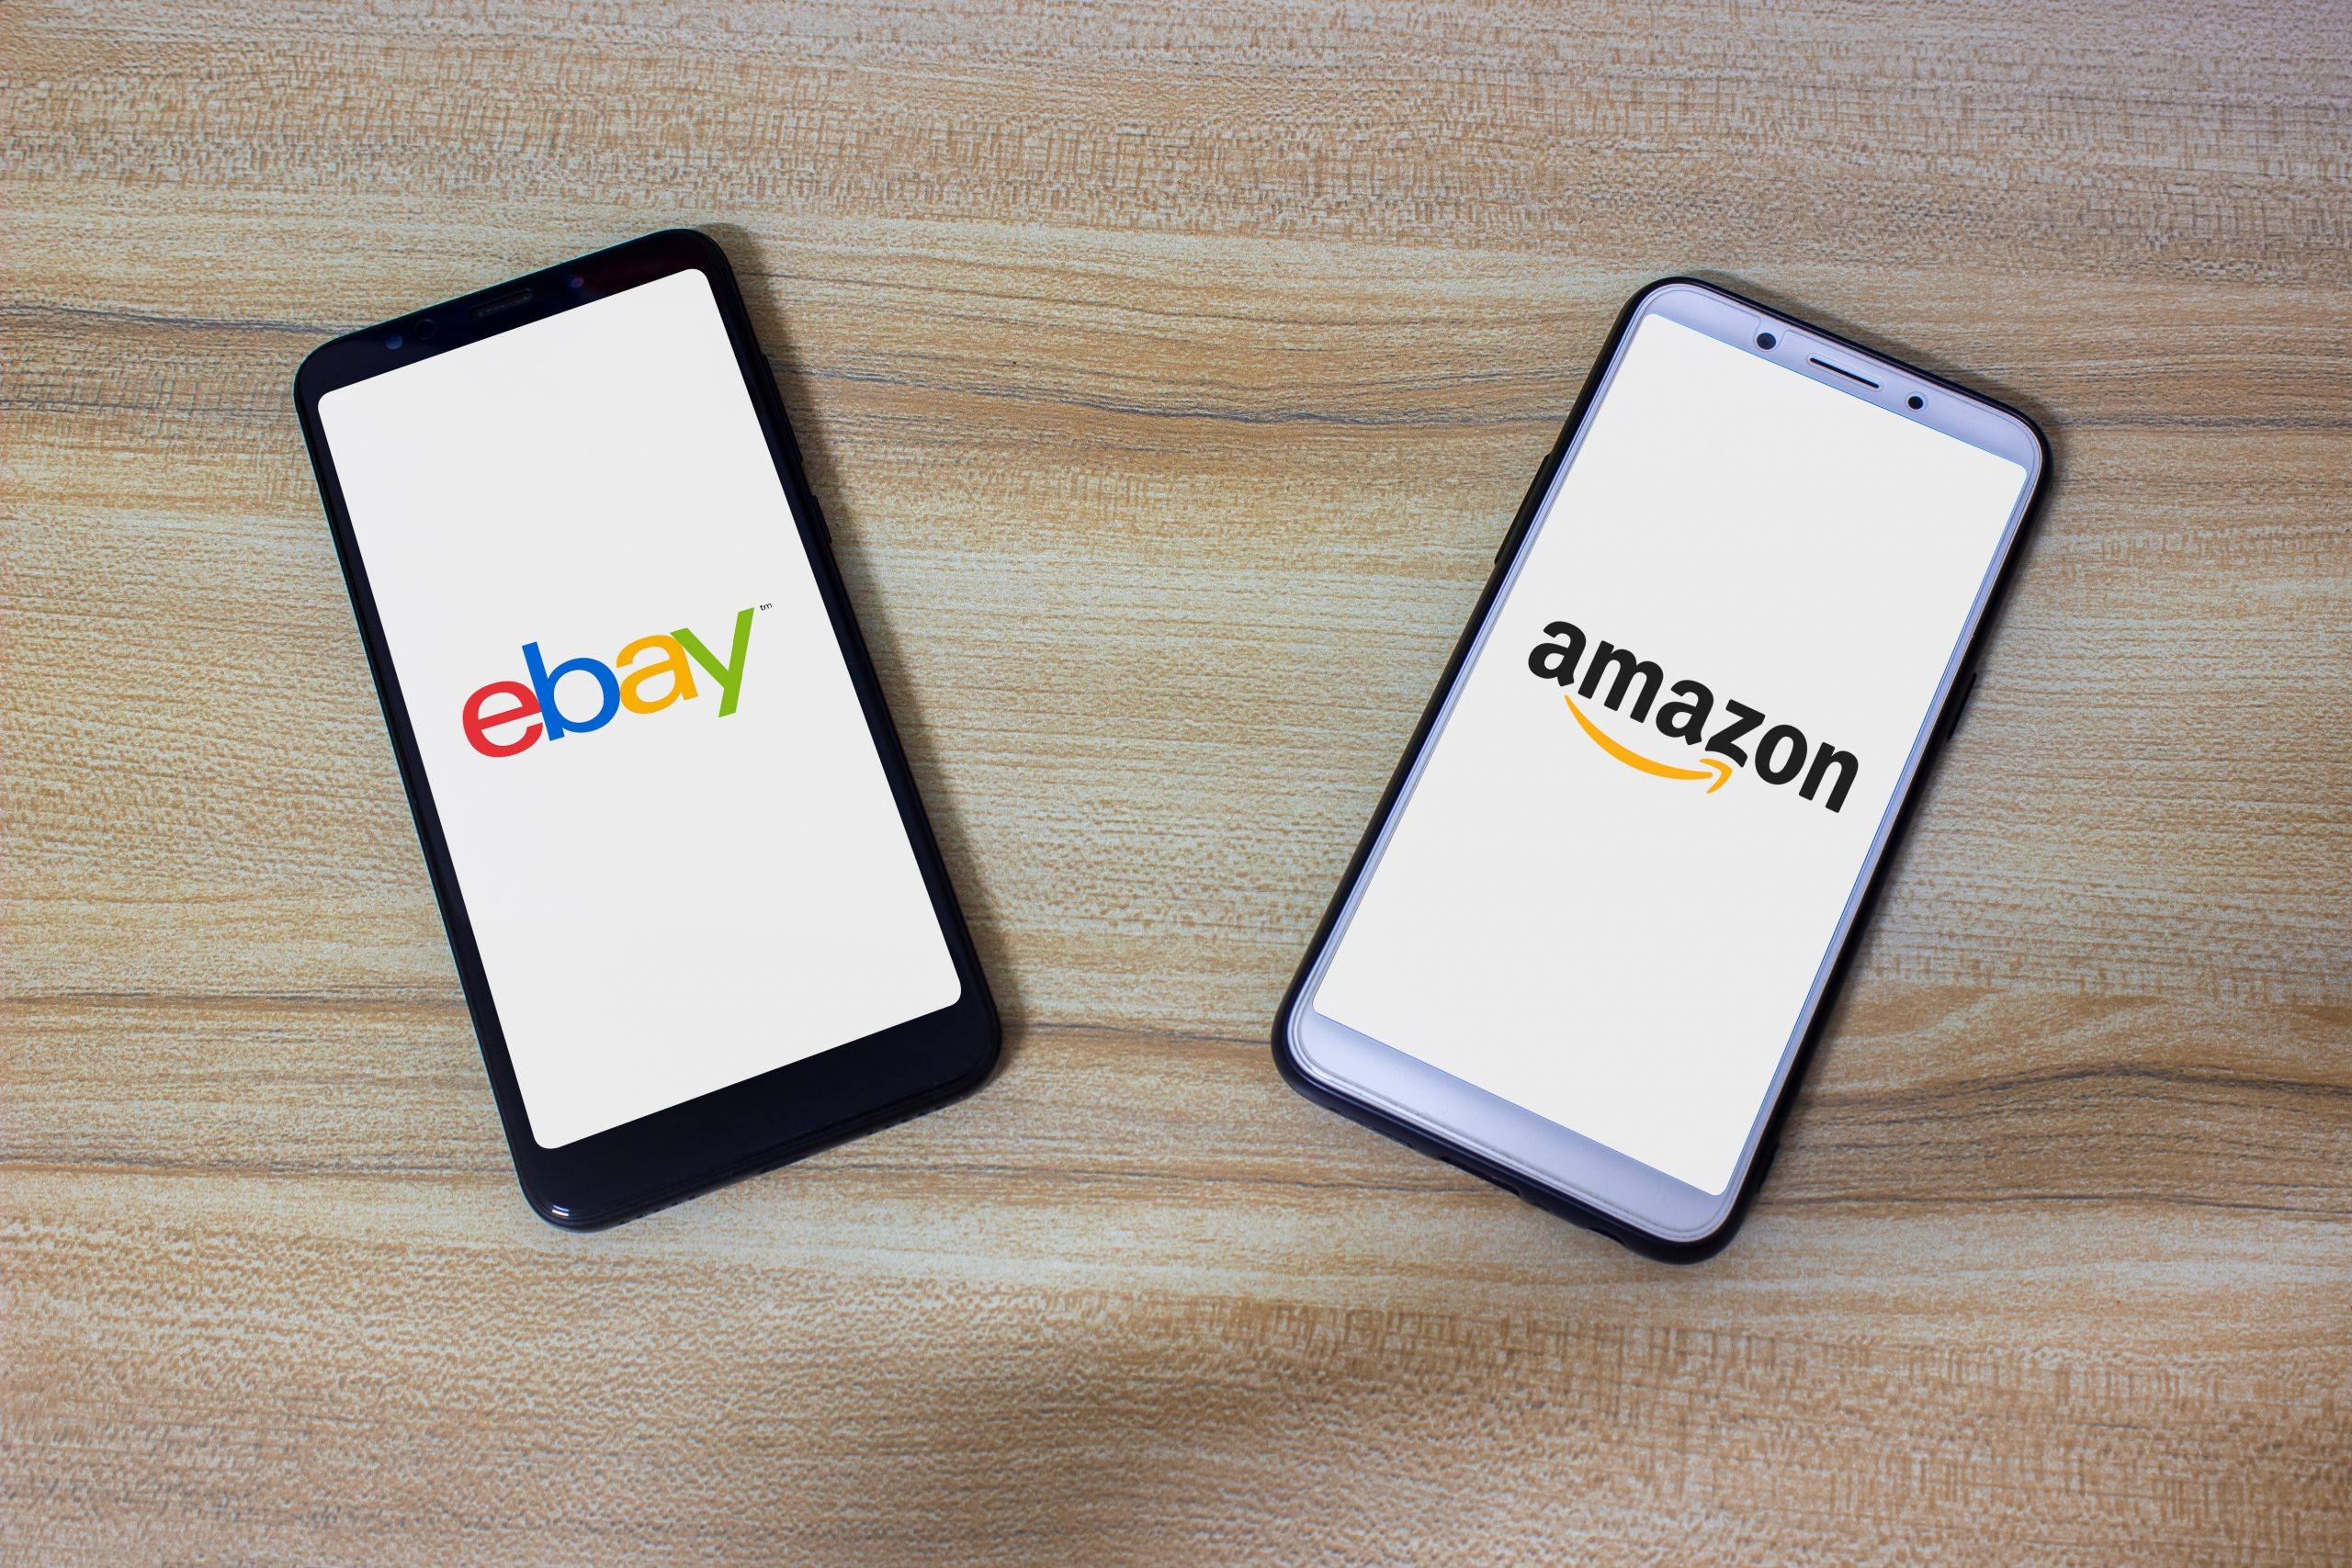 eBay and amazon logos on two smartphones on a table